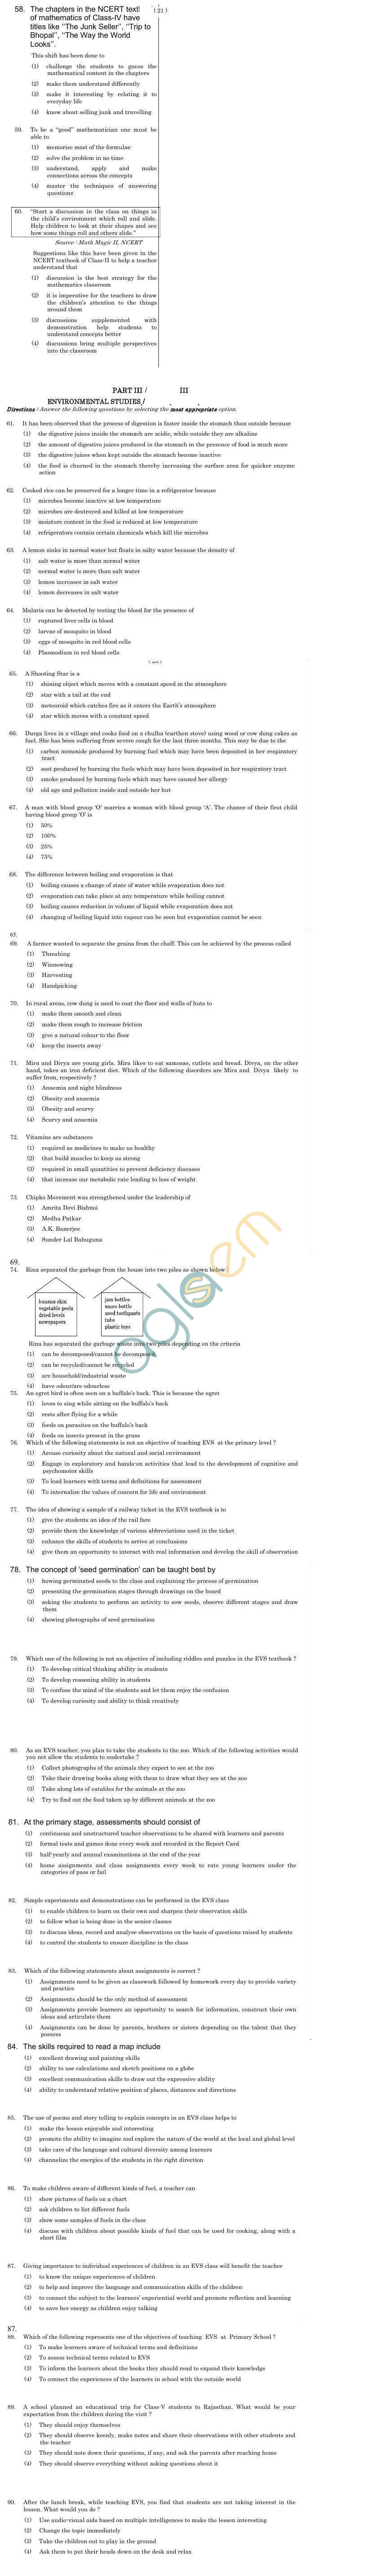 CTET June 2011 Question Papers - Paper 1